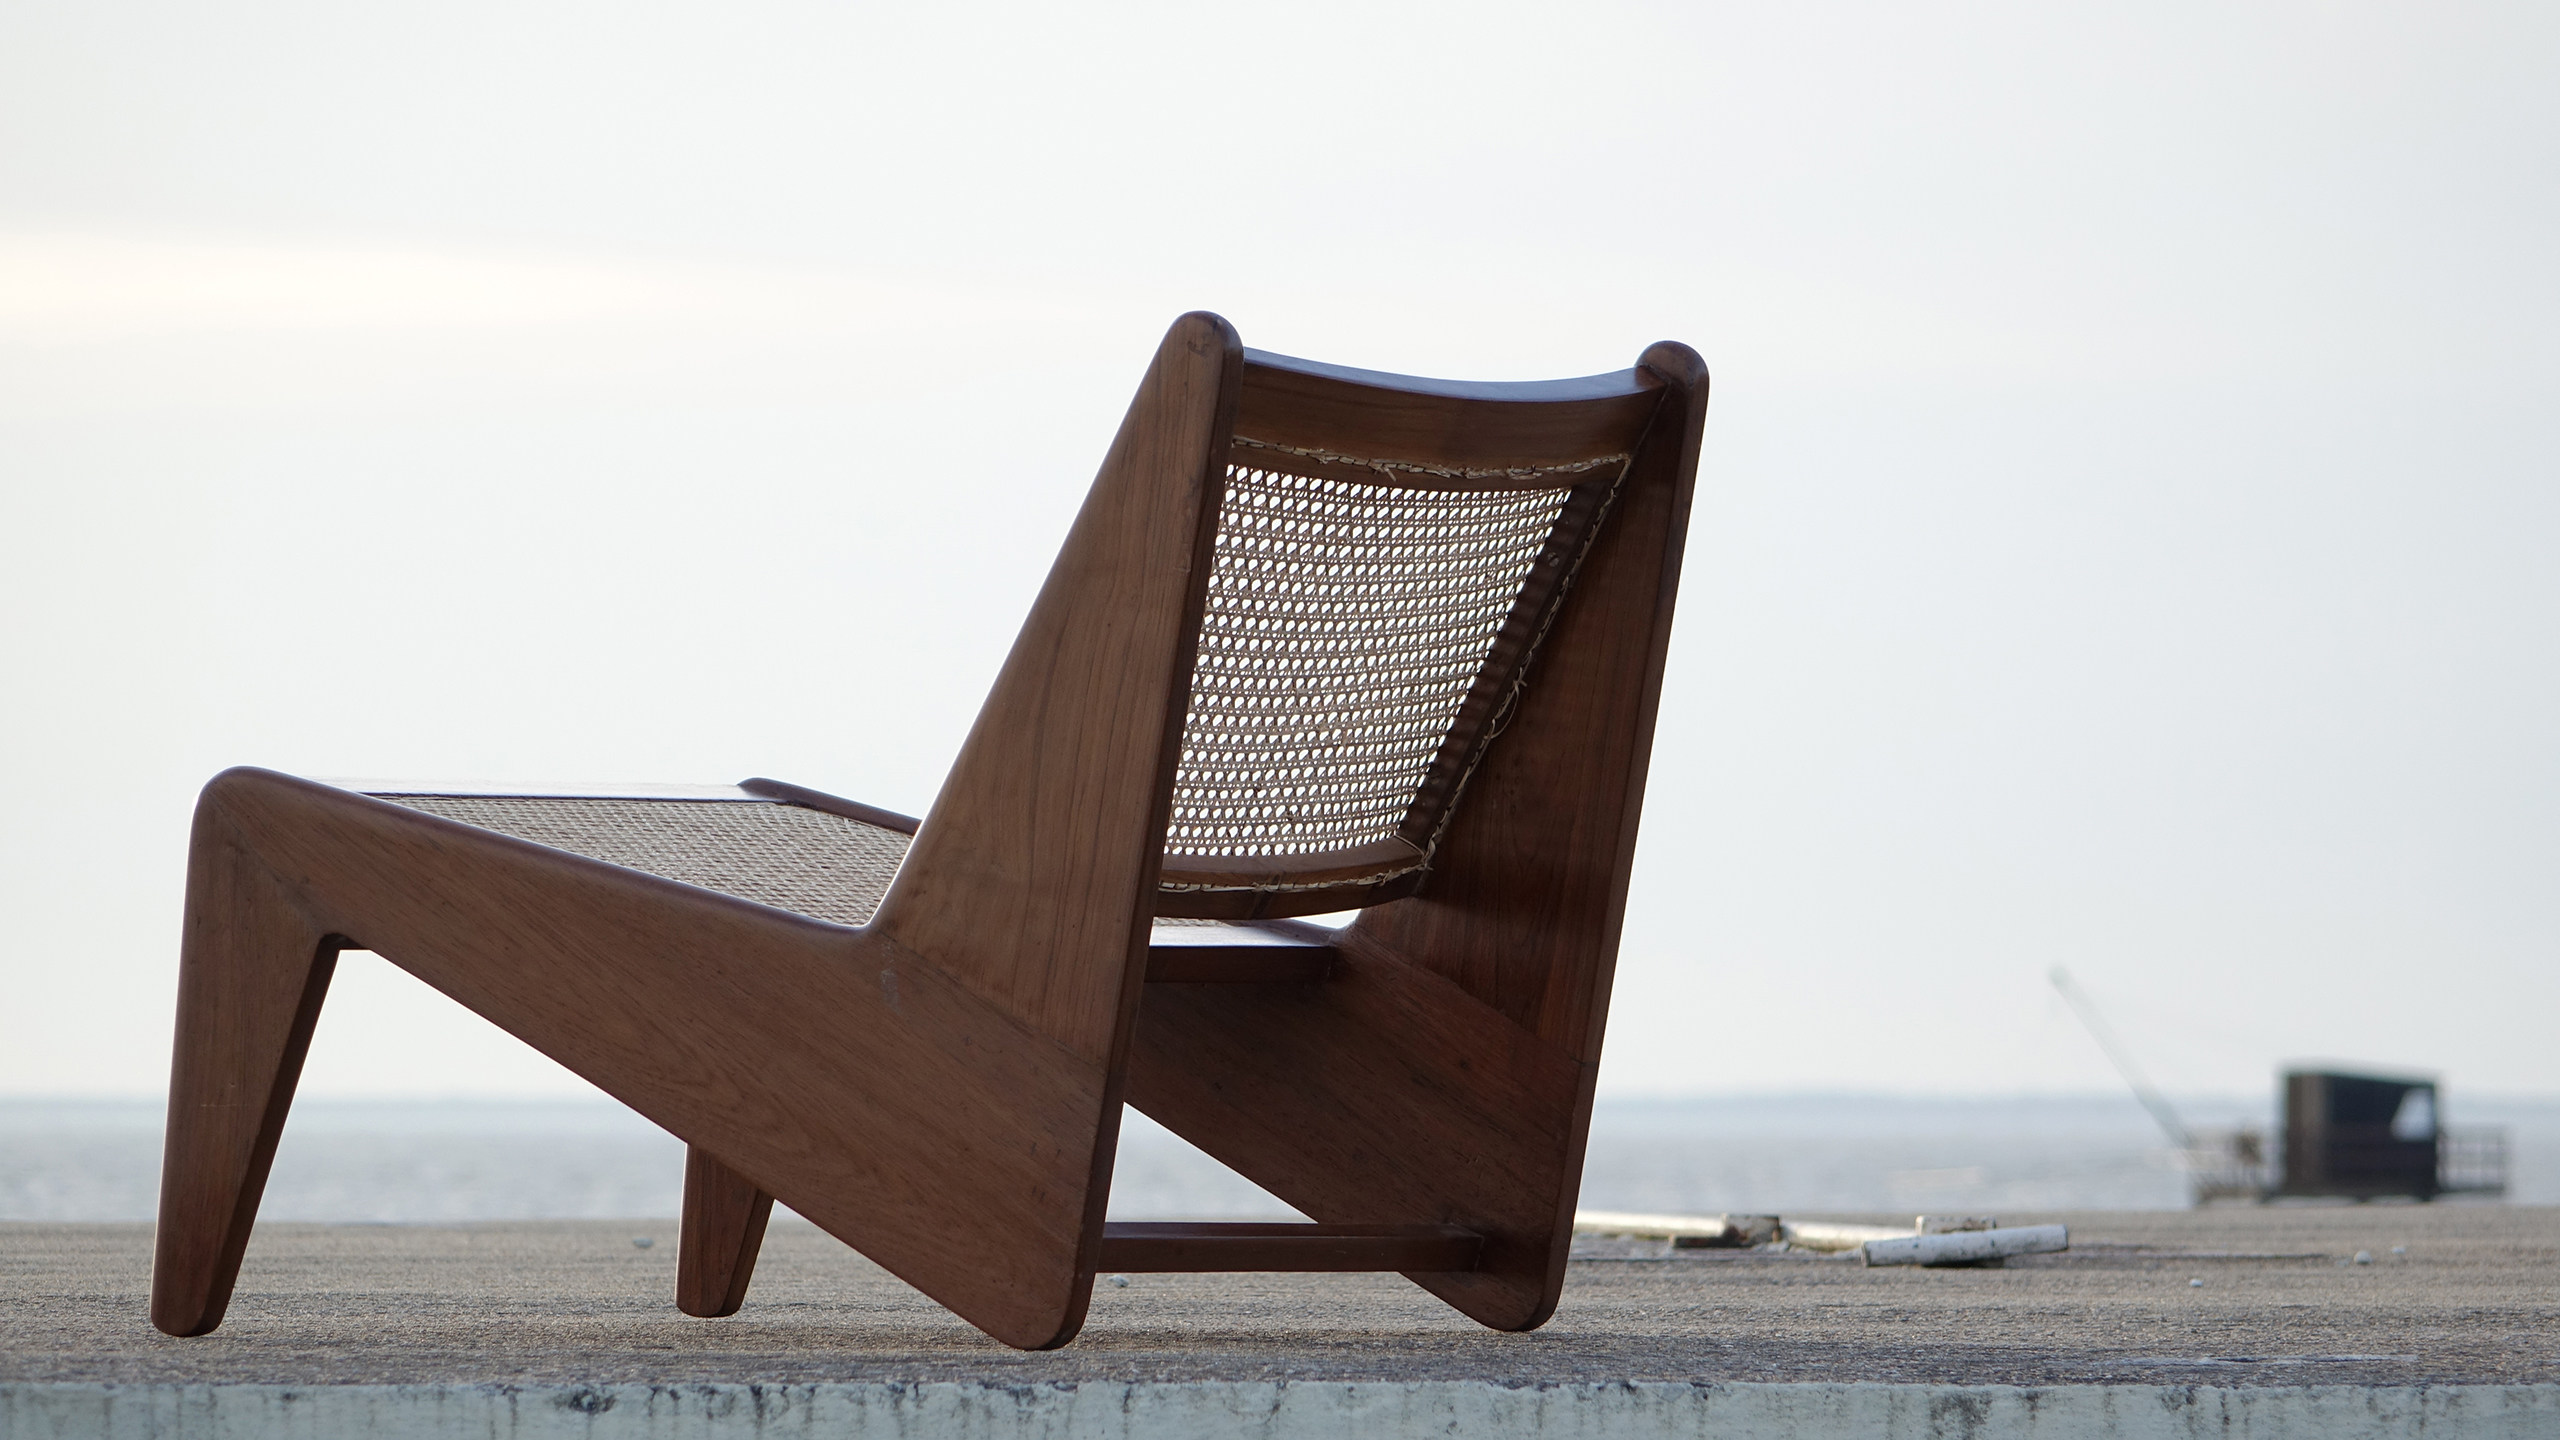 chair design by le corbusier galvanized steel chairs pierre jeanneret kangourou lounge chandigarh